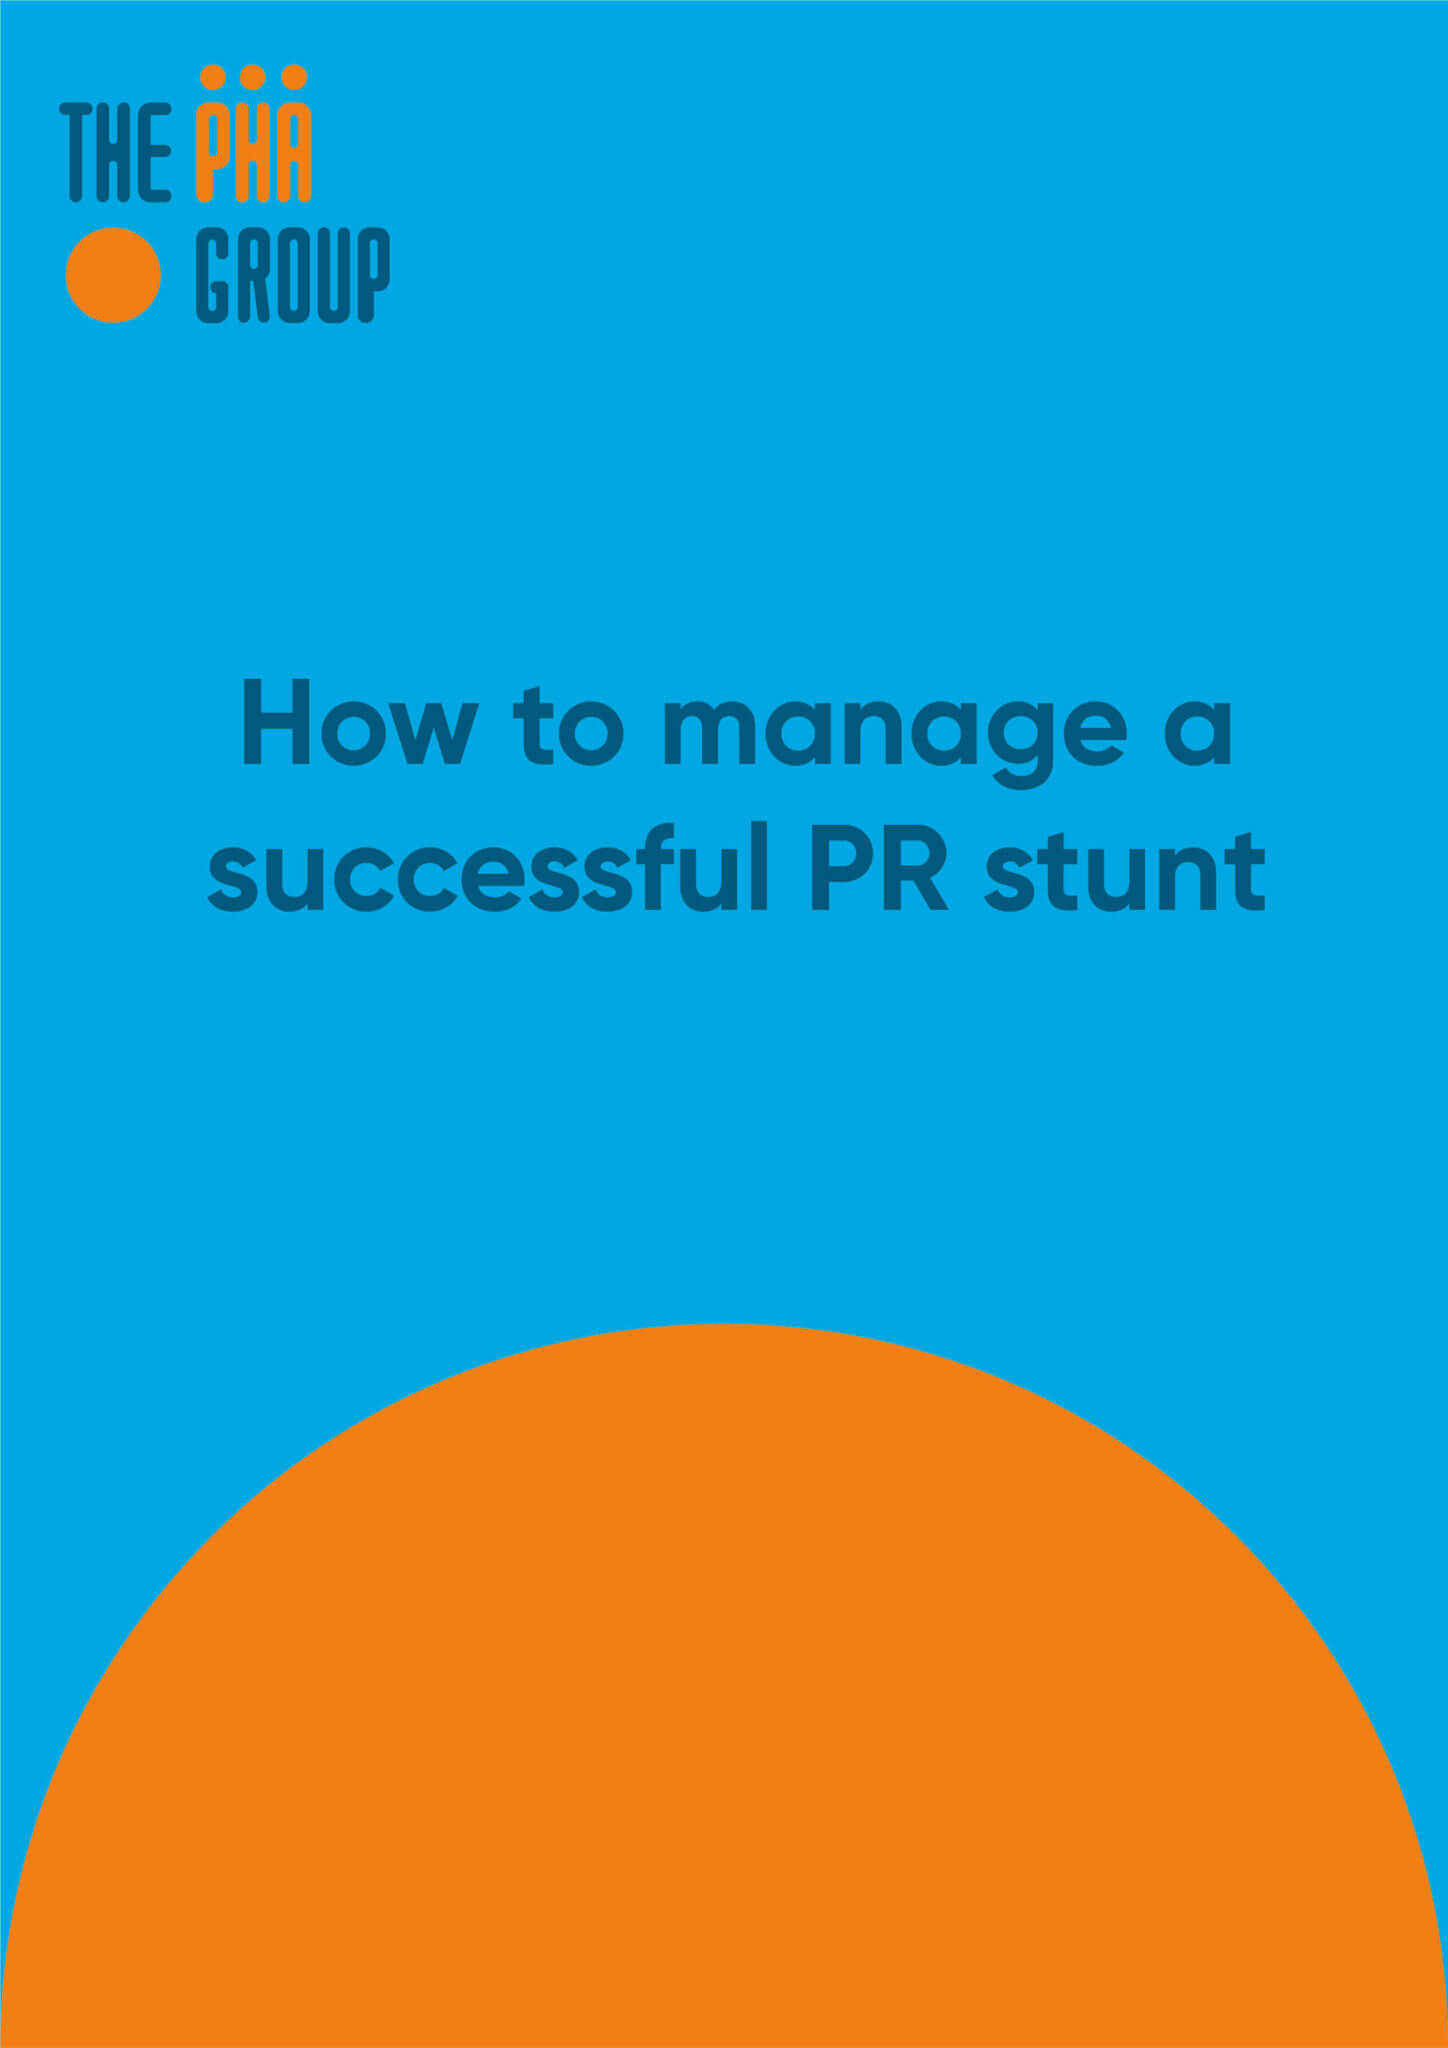 How to manage a successful PR stunt